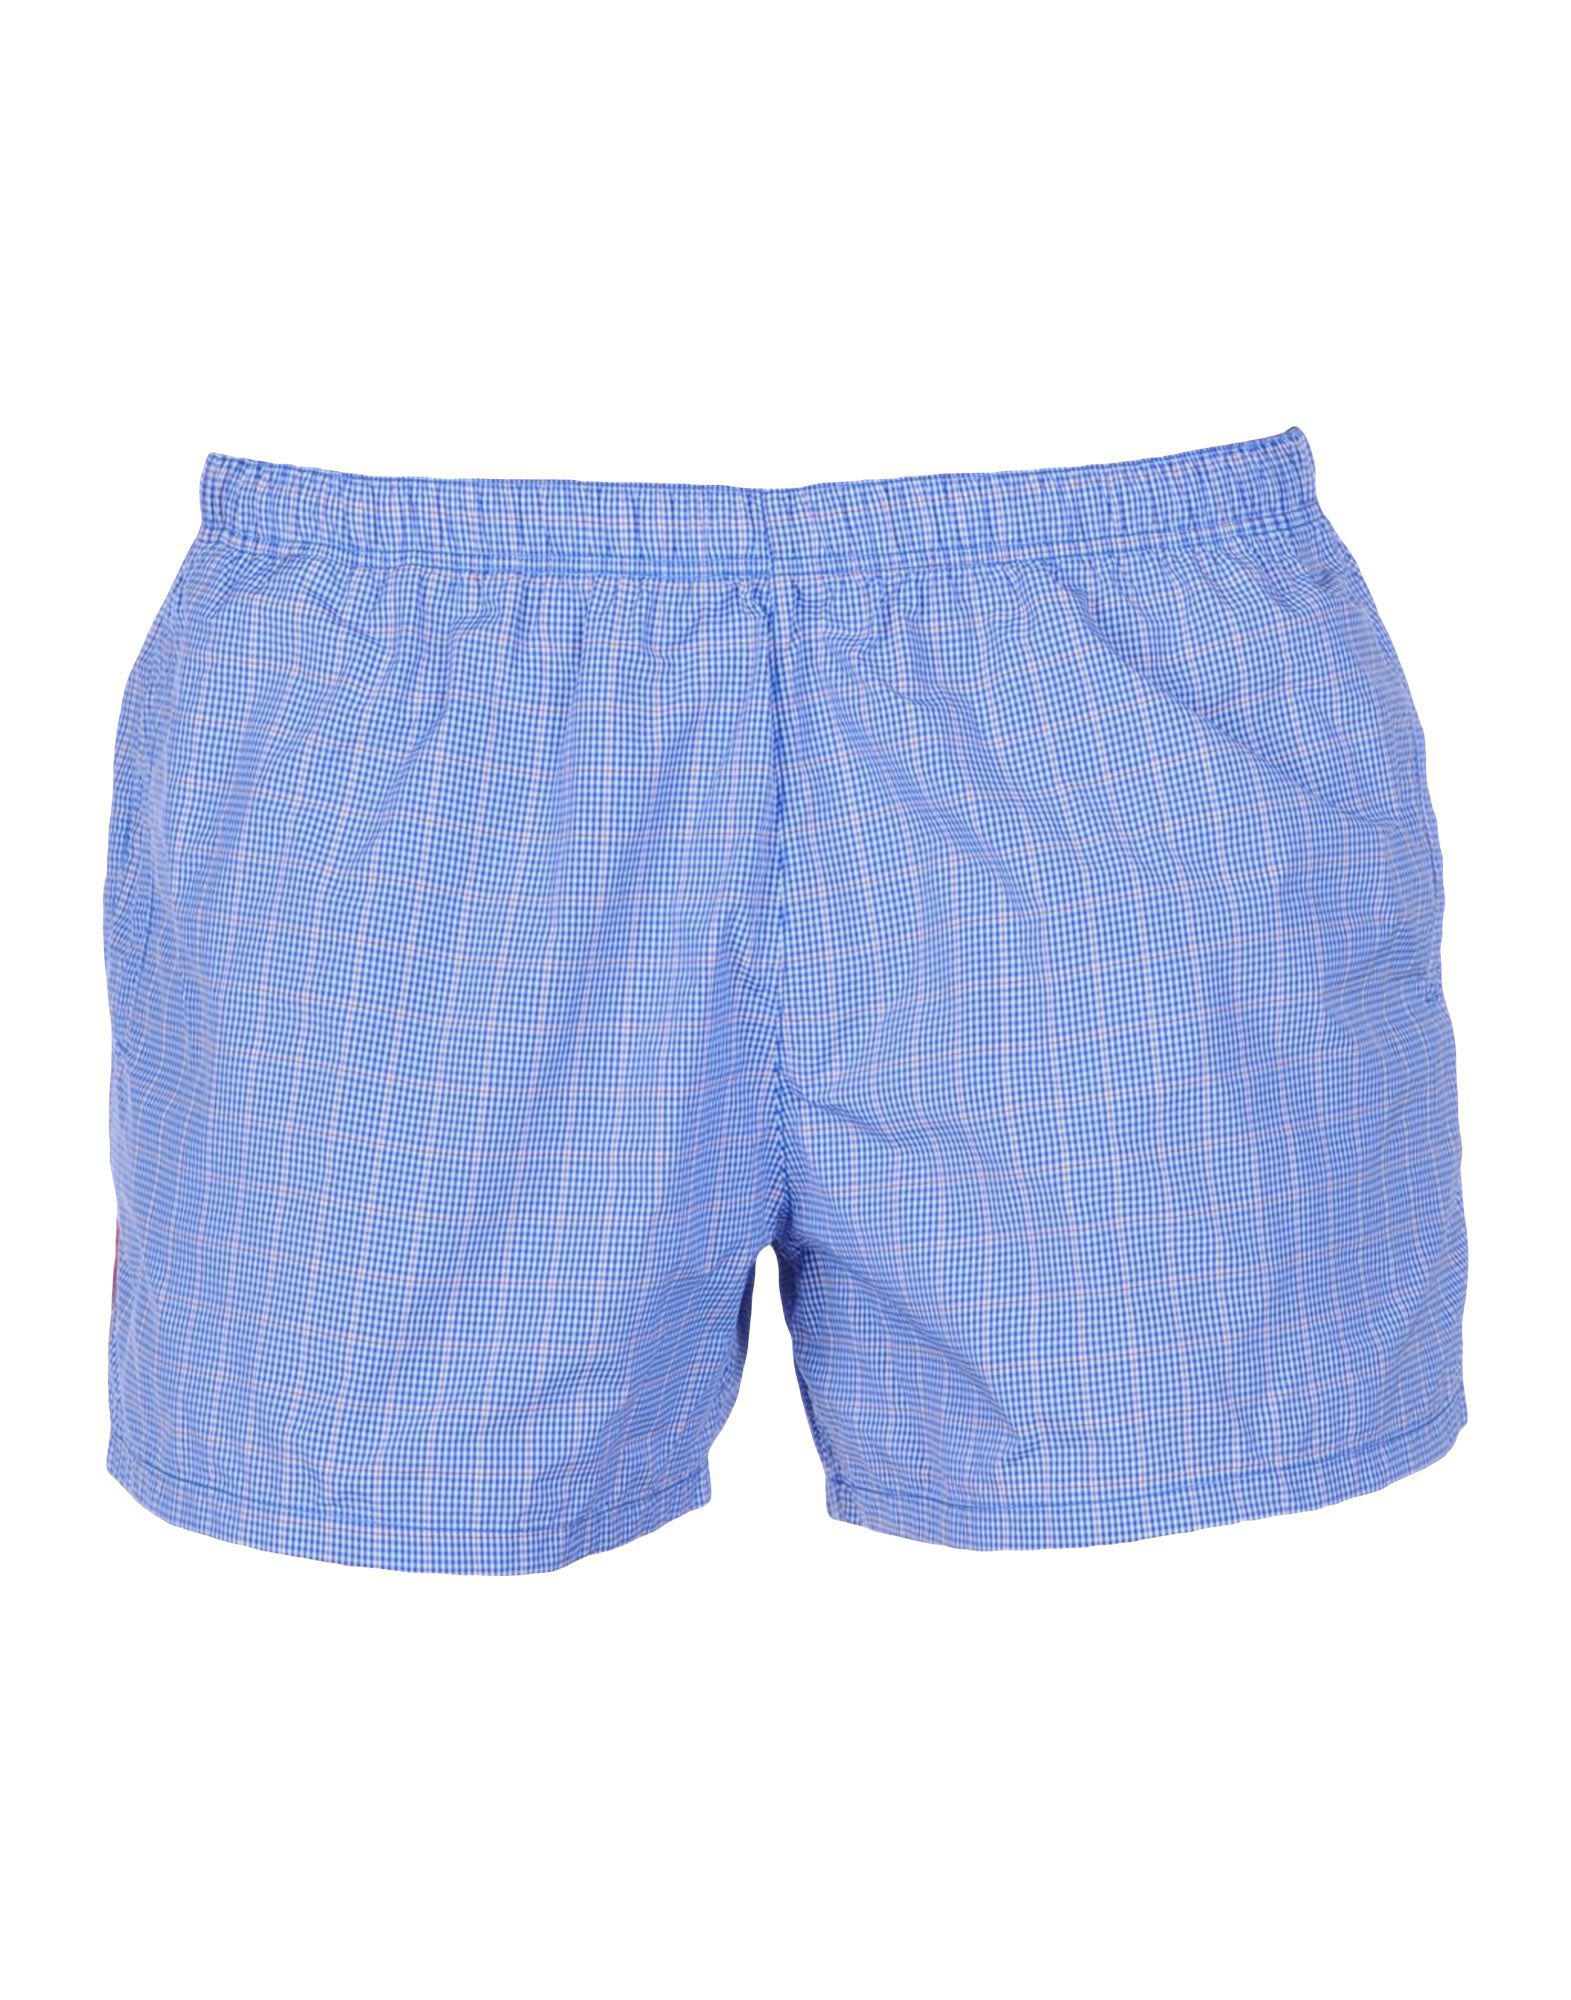 f2f536847f Lyst - Prada Swim Trunks in Blue for Men